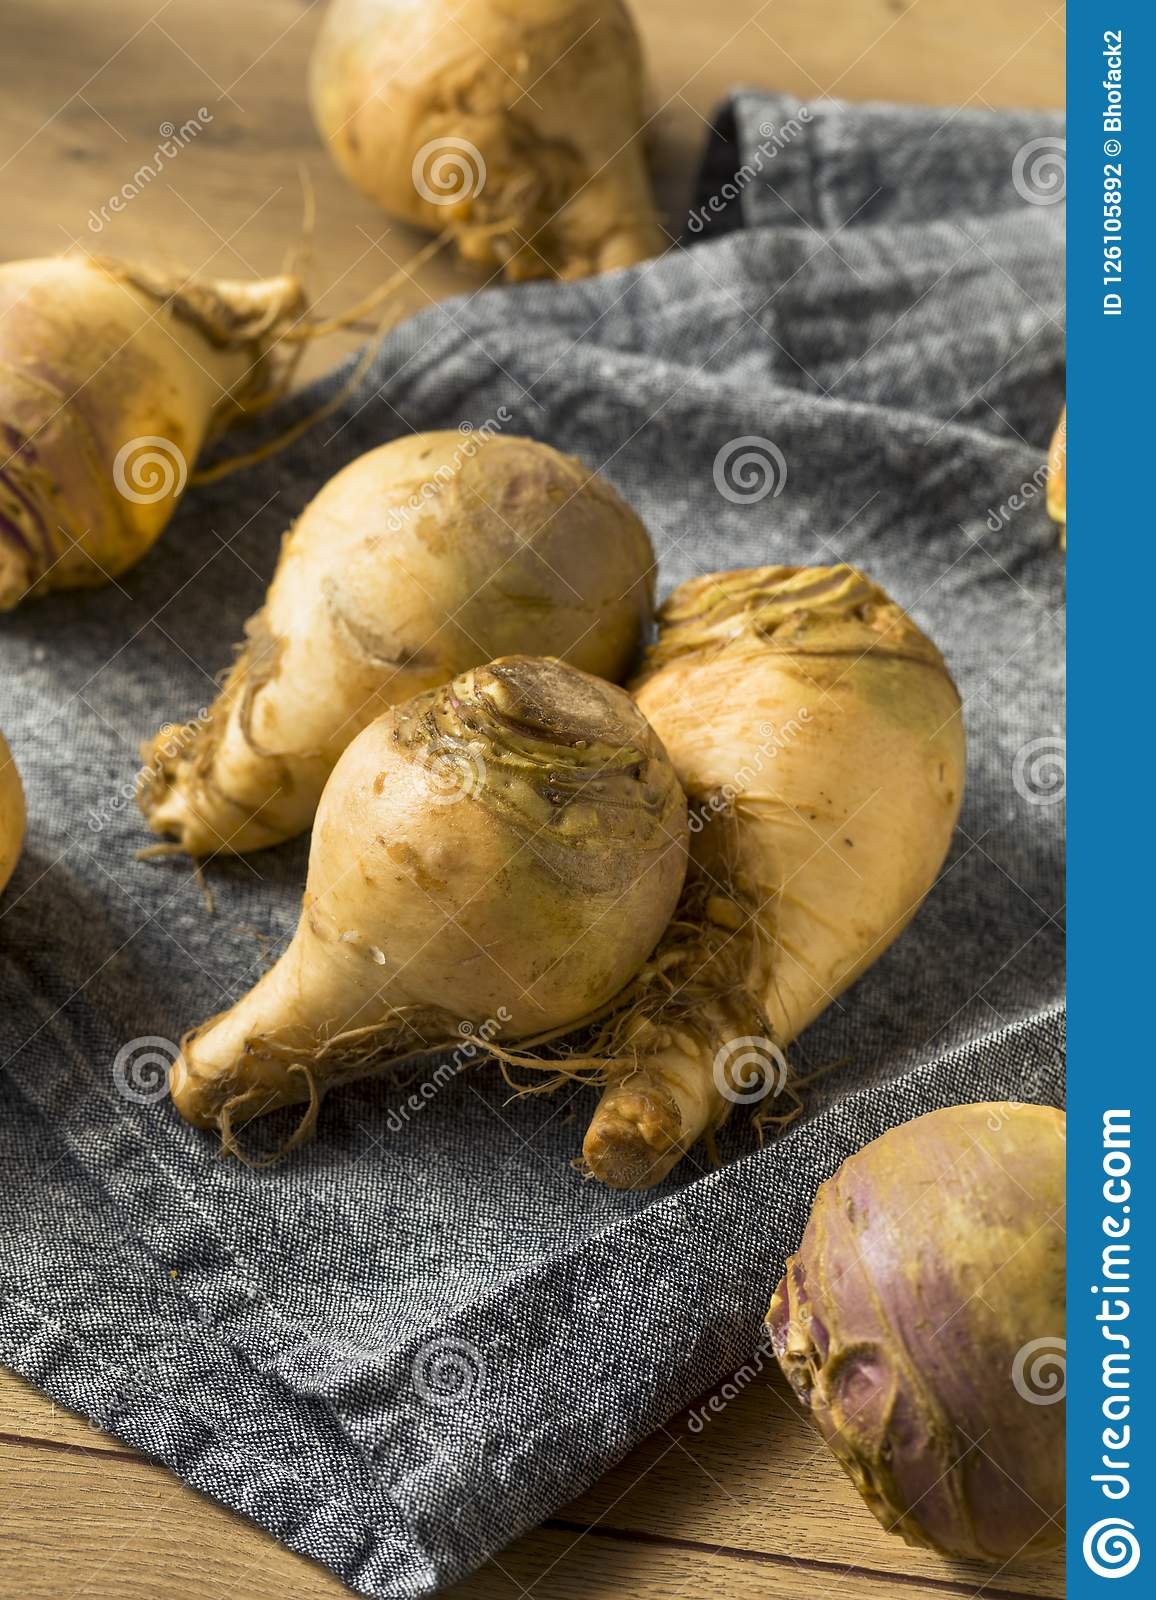 Raw Organic Brown Rutabaga Root Stock Photo Image Of Root Plant